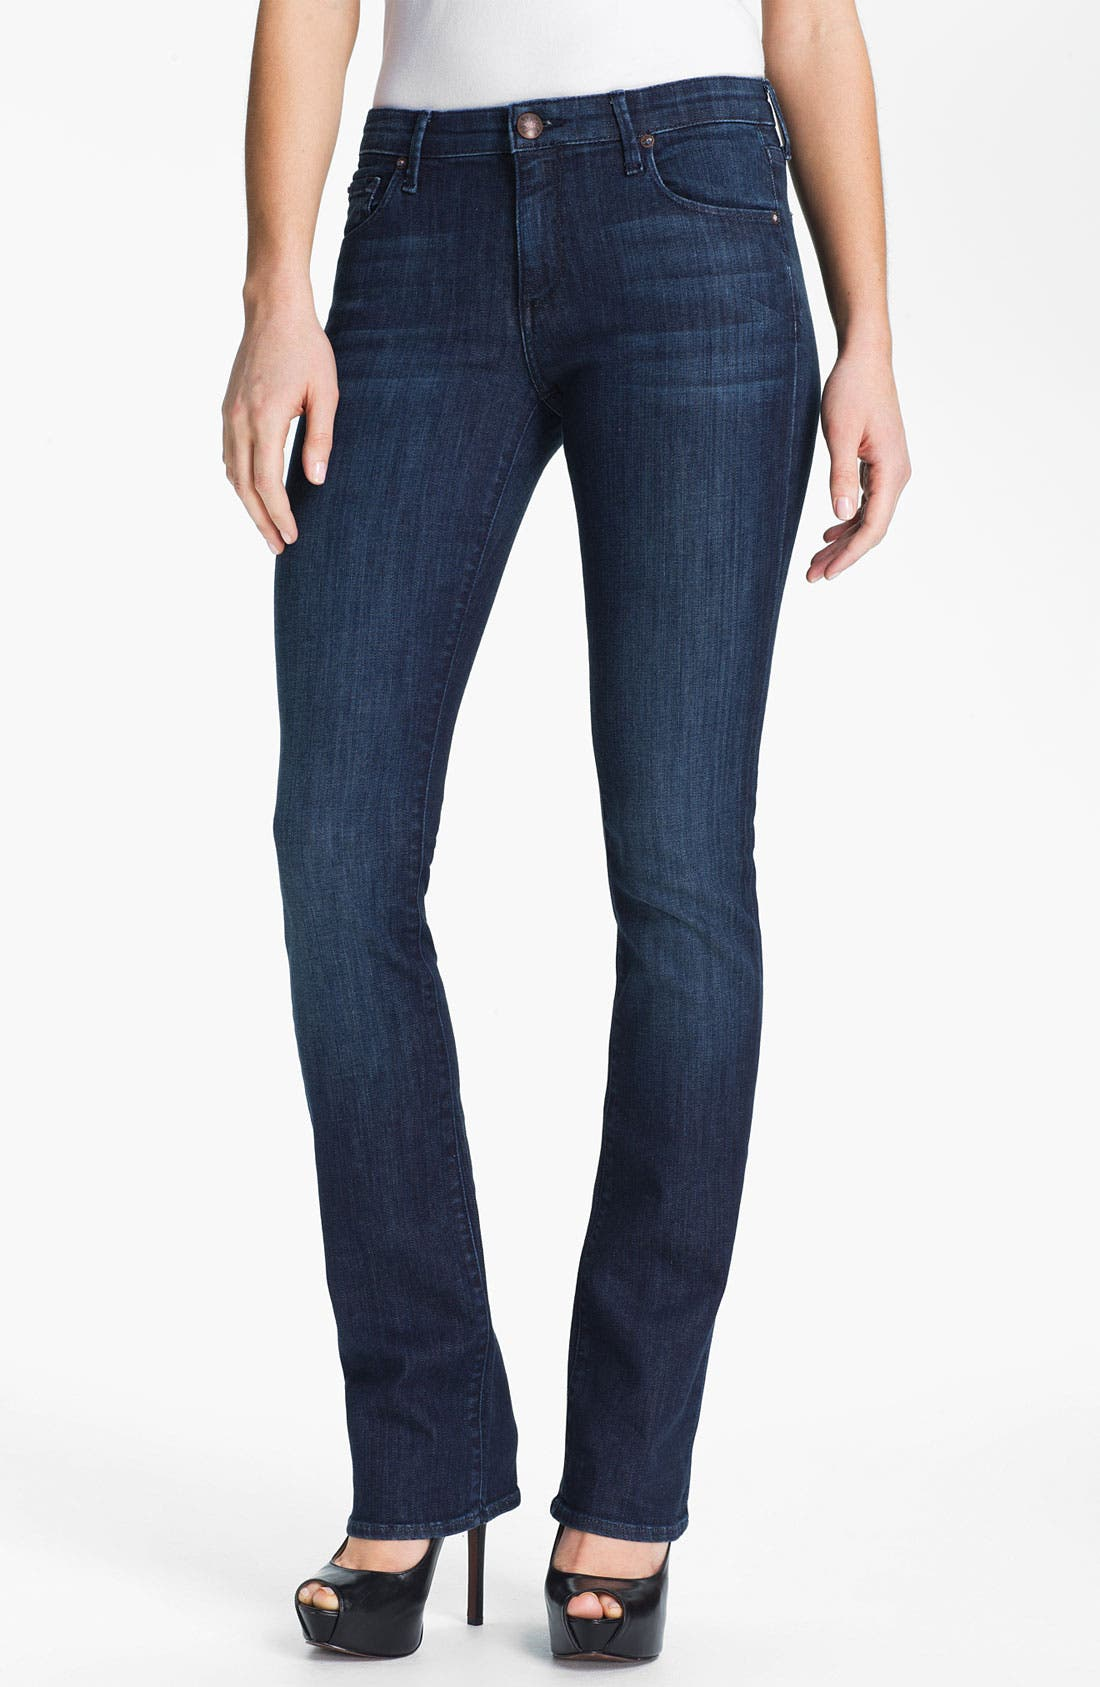 Alternate Image 1 Selected - Agave 'Linea' Slim Bootcut Jeans (Norte) (Online Exclusive)